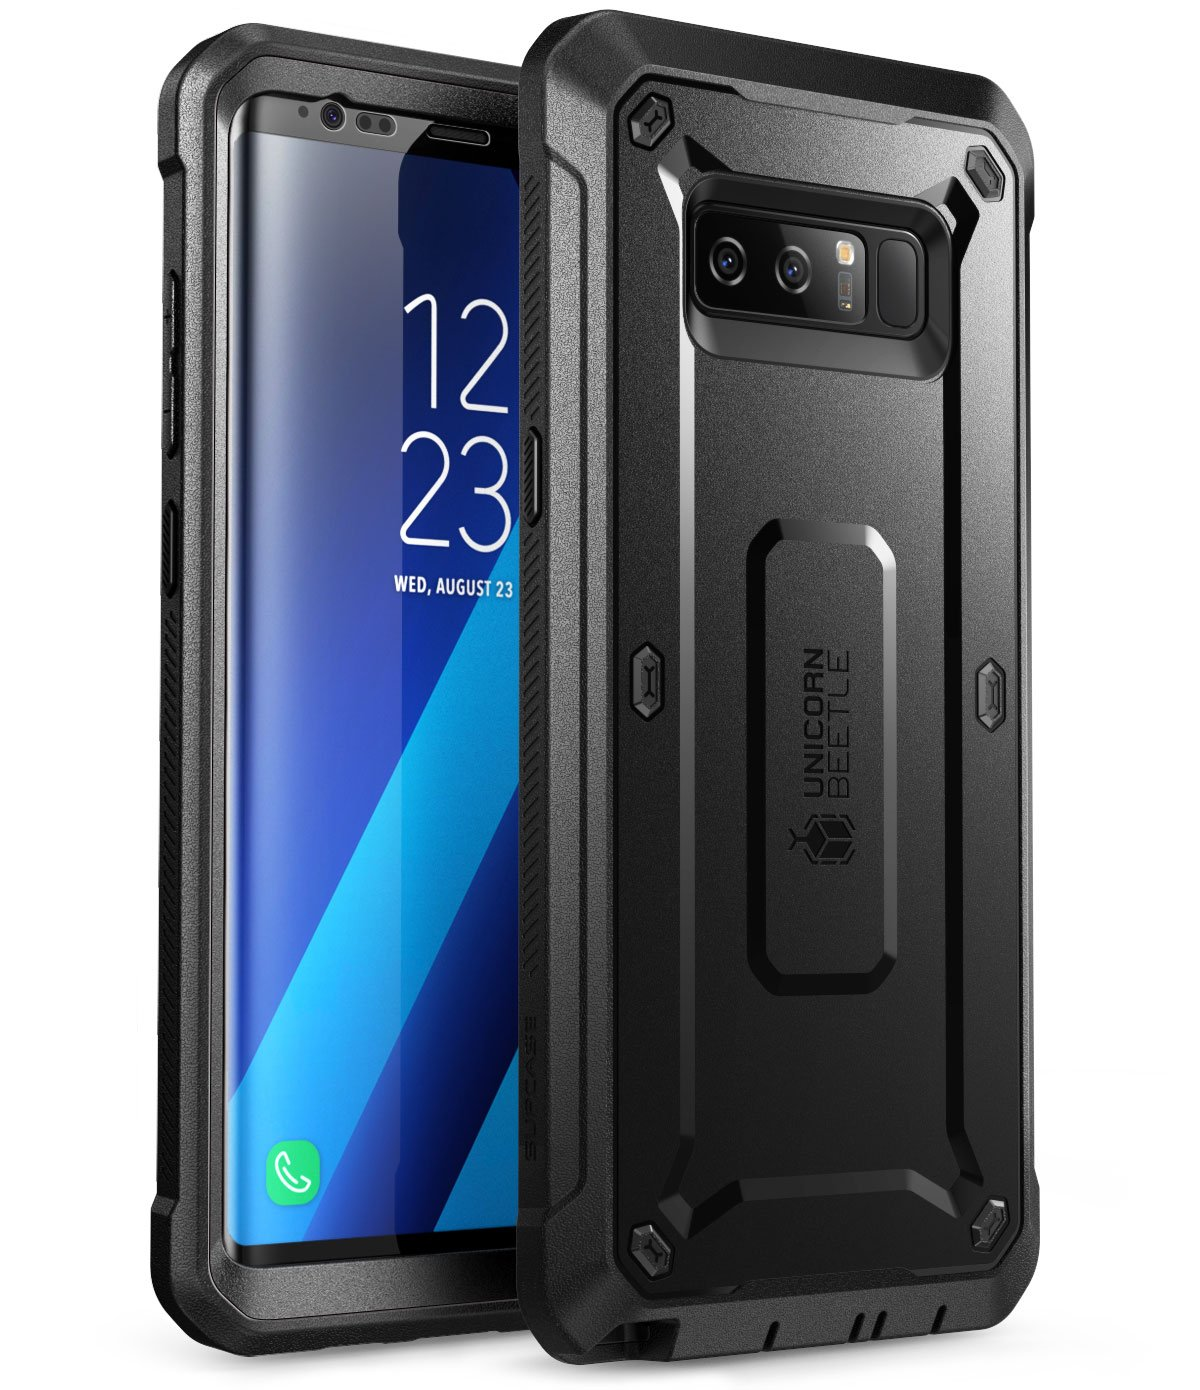 Samsung Galaxy Note 8 Case, SUPCASE Full-Body Rugged Holster Case with Built-in Screen Protector for Galaxy Note 8 (2017 Release), Unicorn Beetle Shield Series - Retail Package (Black/Black)